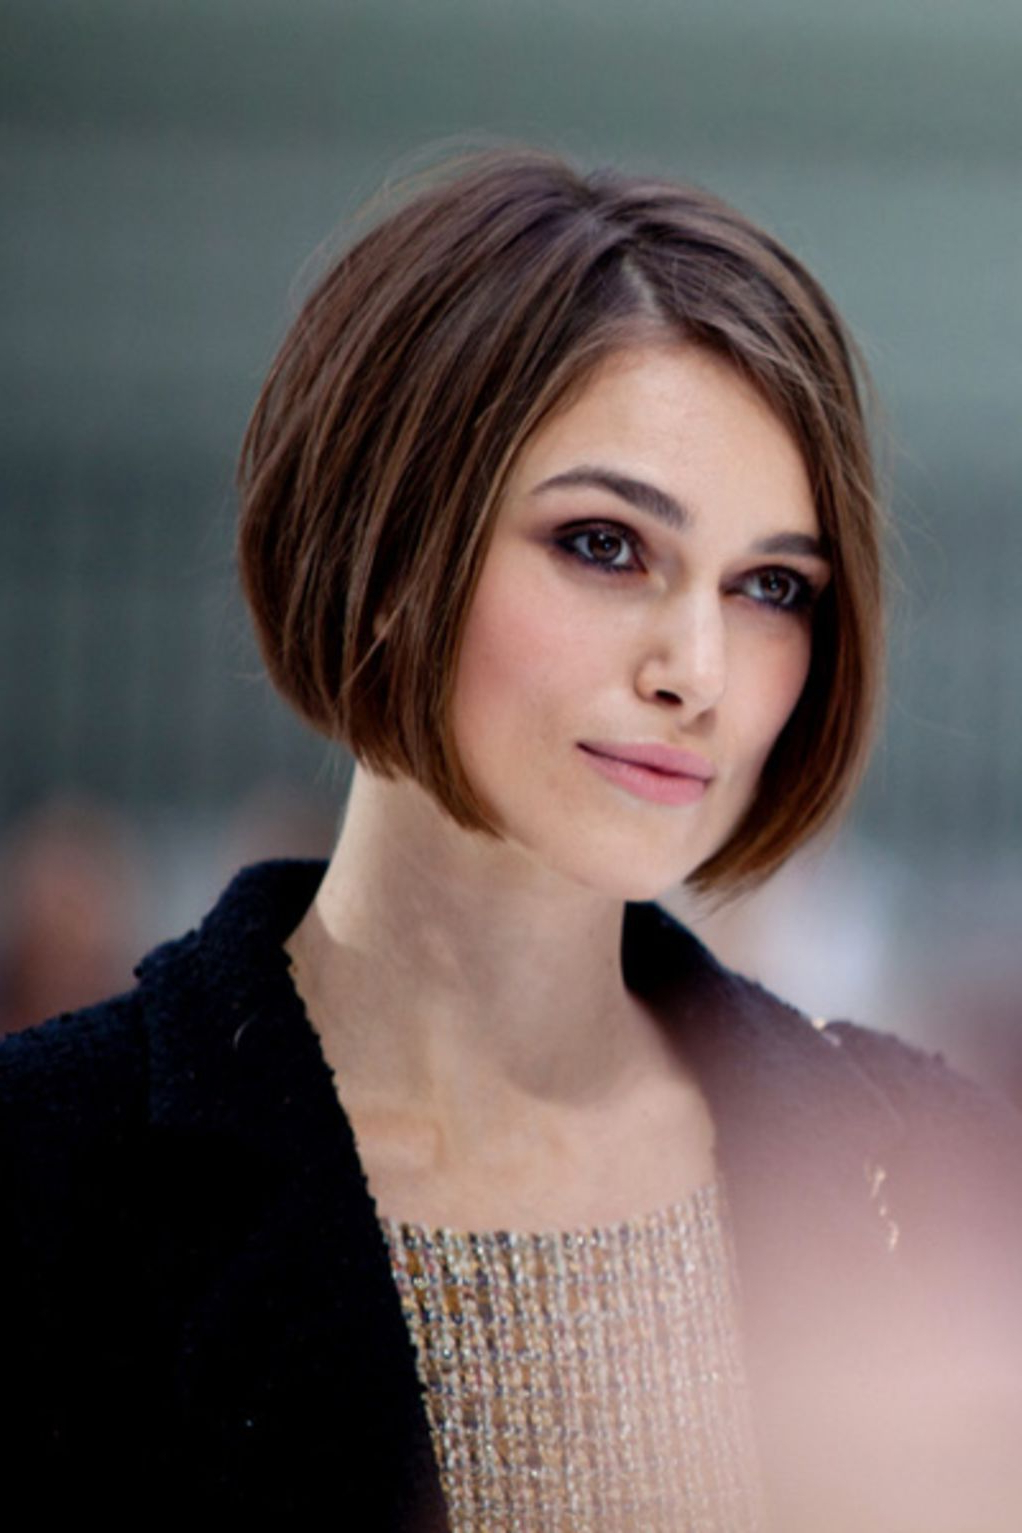 Keira Knightley's New Haircut And Other Front Row Beauty Triumphs Pertaining To Keira Knightley Short Hairstyles (View 22 of 25)